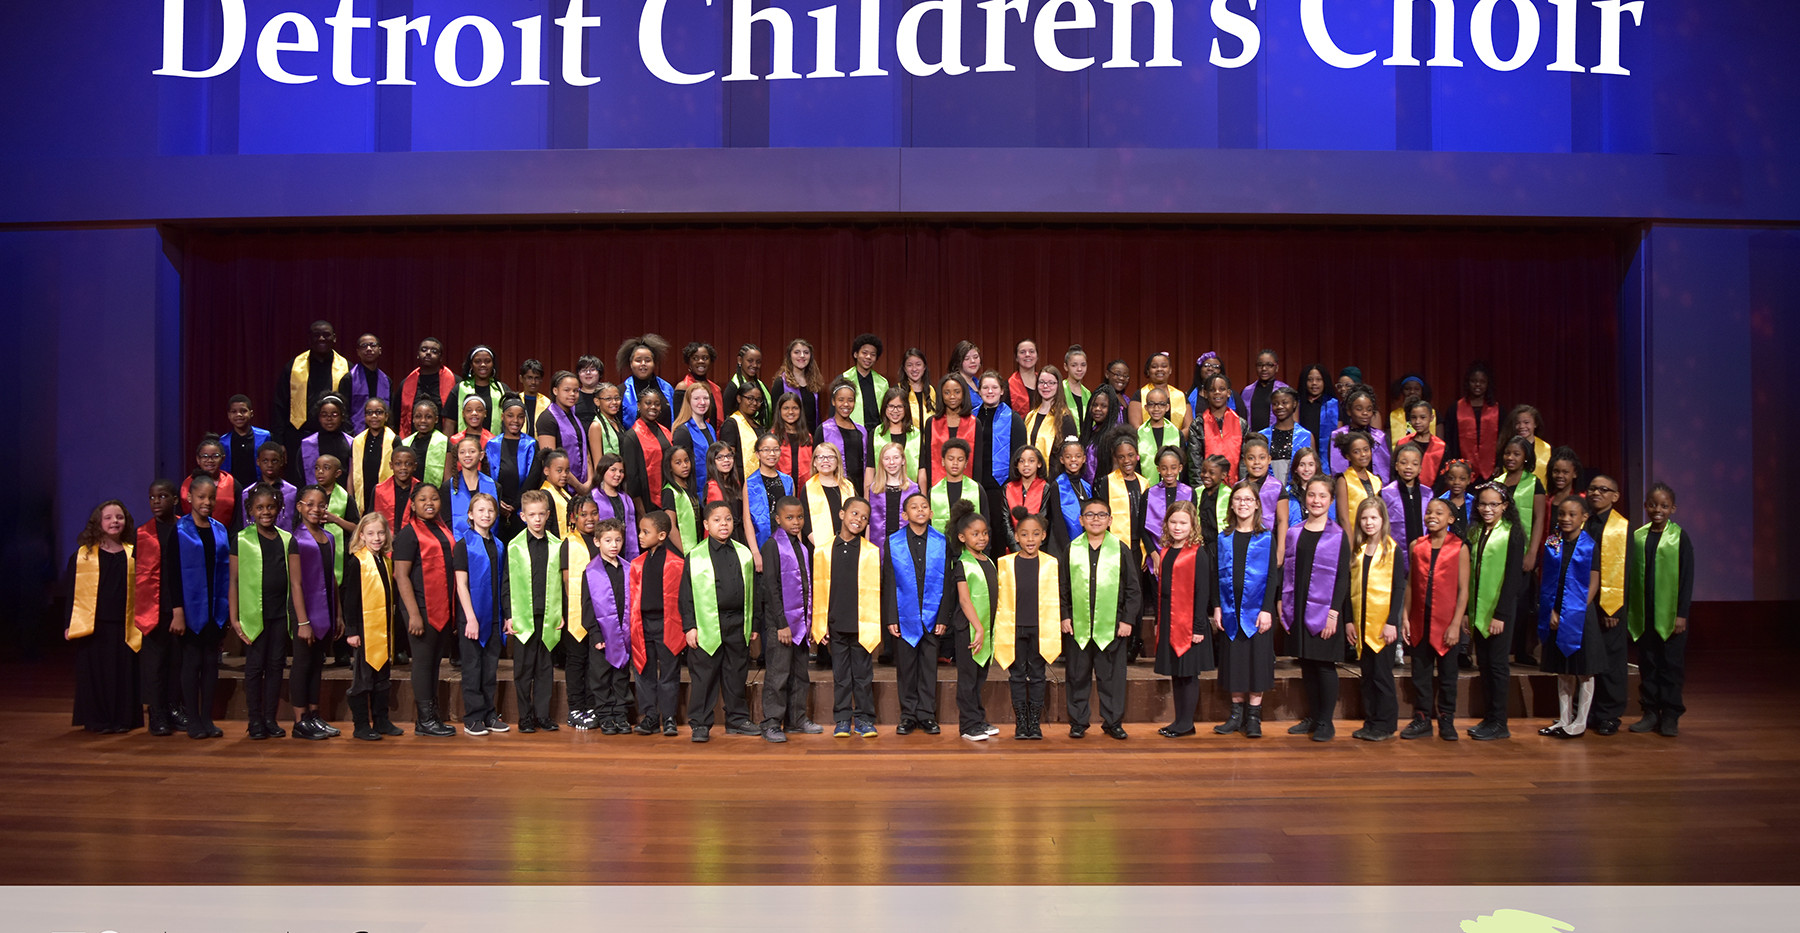 Detroit Childrens Choir